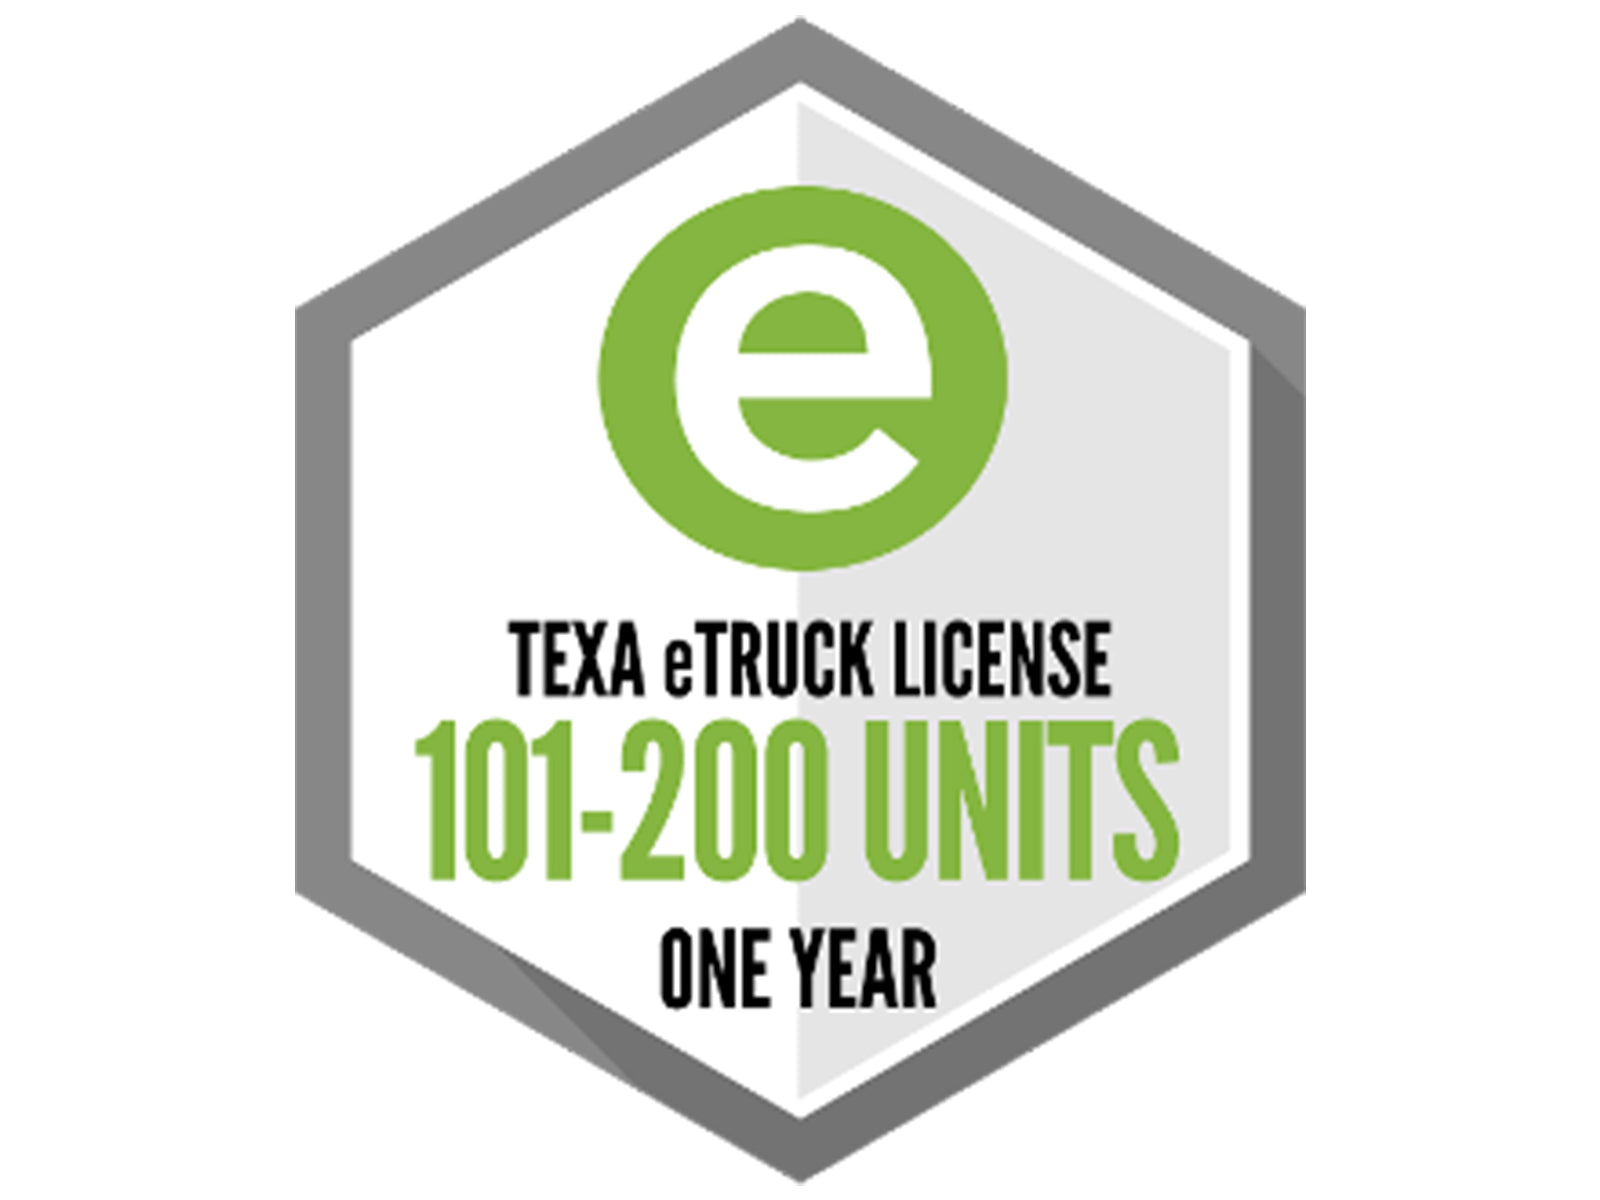 TEXA eTruck Software License for 101-200 Units